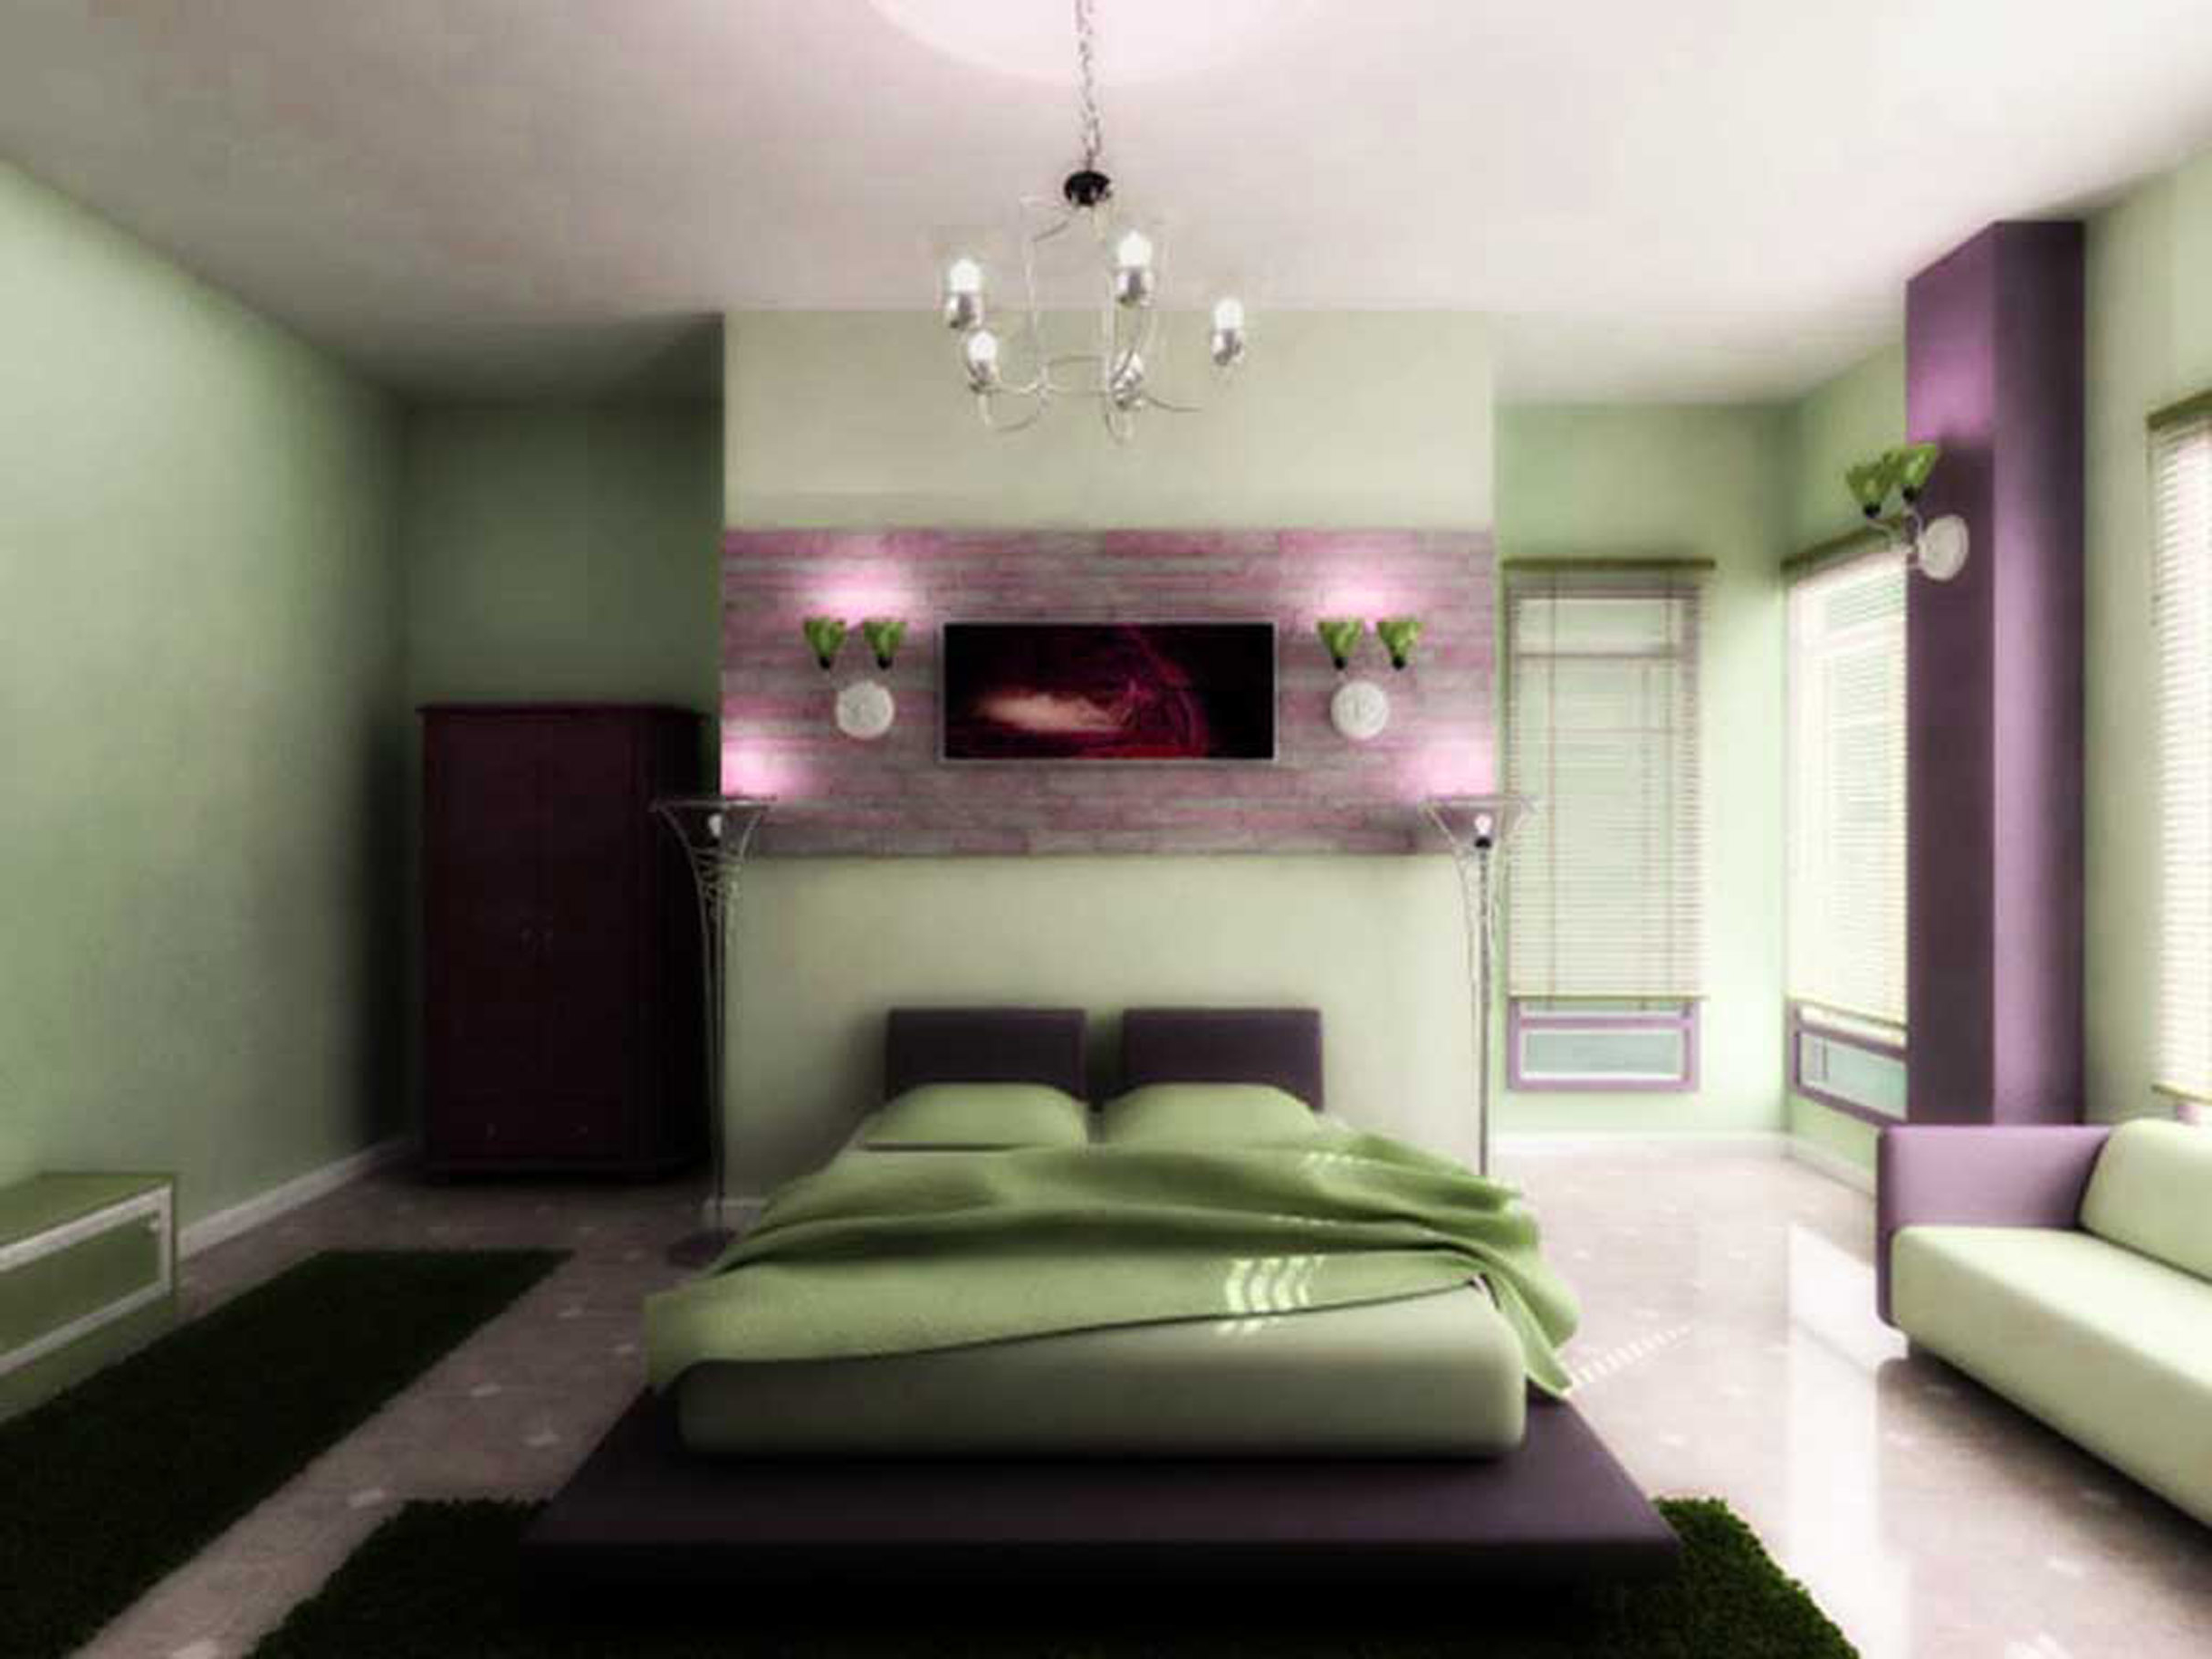 Pretty Purple Bedside Wall Lights Bedroom Lighting Tips Best Combined With Green Ornaments Modern Bedroom Lighting Design Ideas (Image 24 of 28)